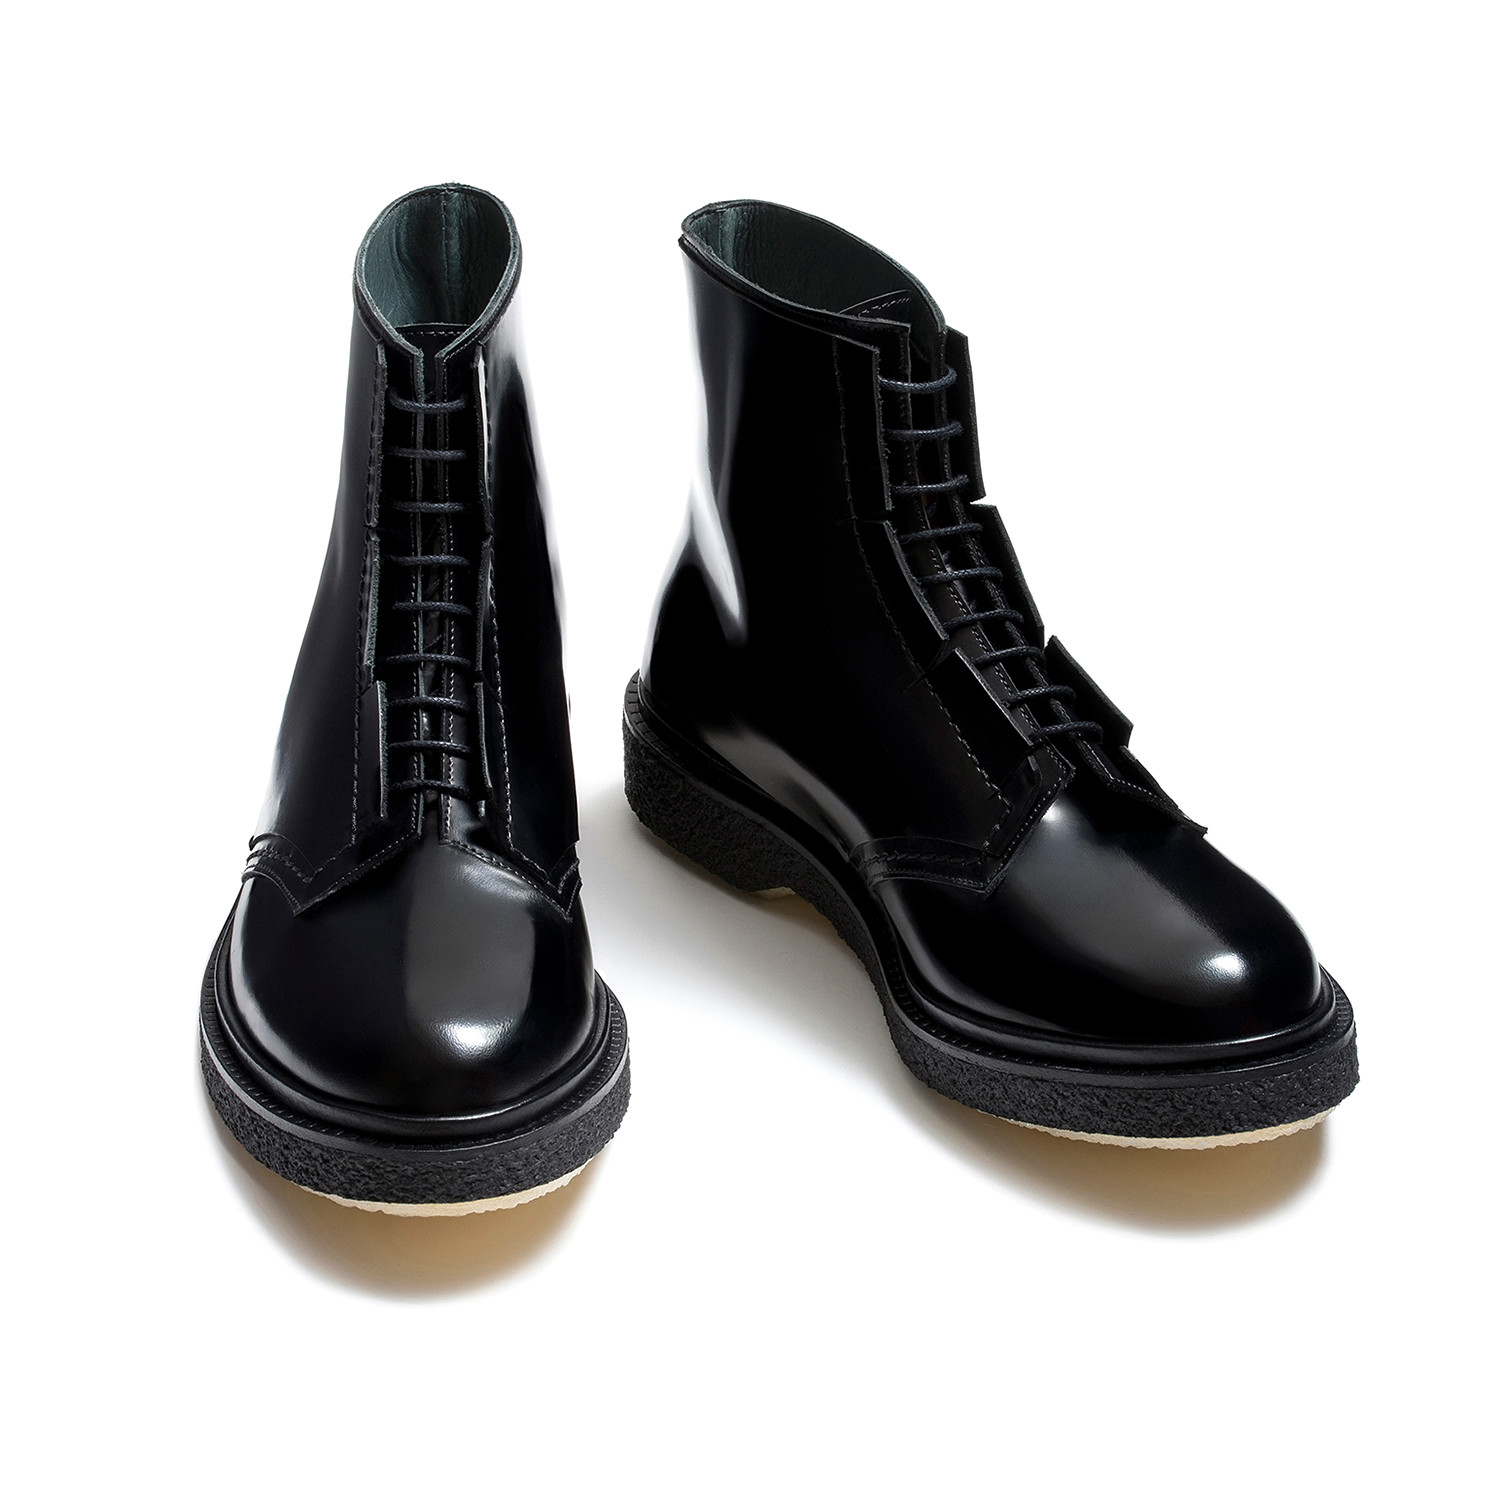 Shiny Lace-Up Tall Ankle Boot // Black